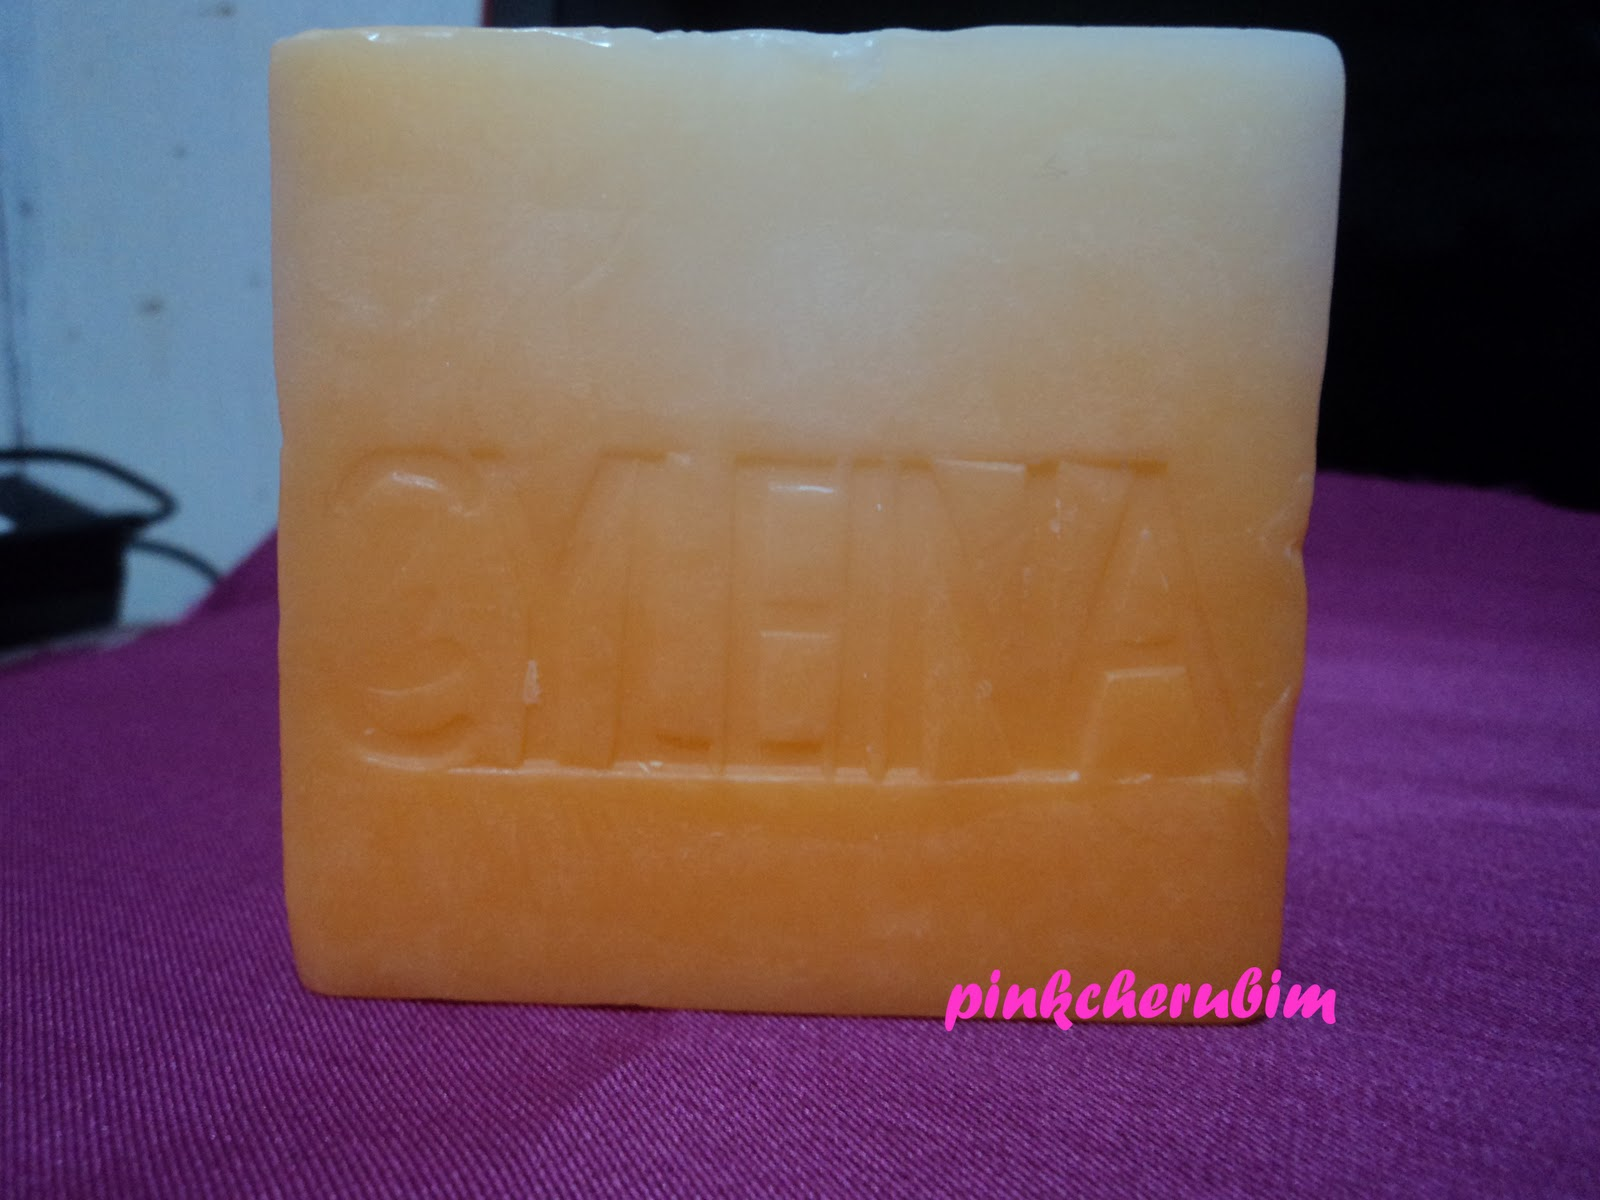 Superb Glow February 2011 Soap Bar Ra That I Would Not Have Any Break Outs After Using The But If Pimples Or Rashes Appear Guess Its Time To Conclude Pgm Is For Me